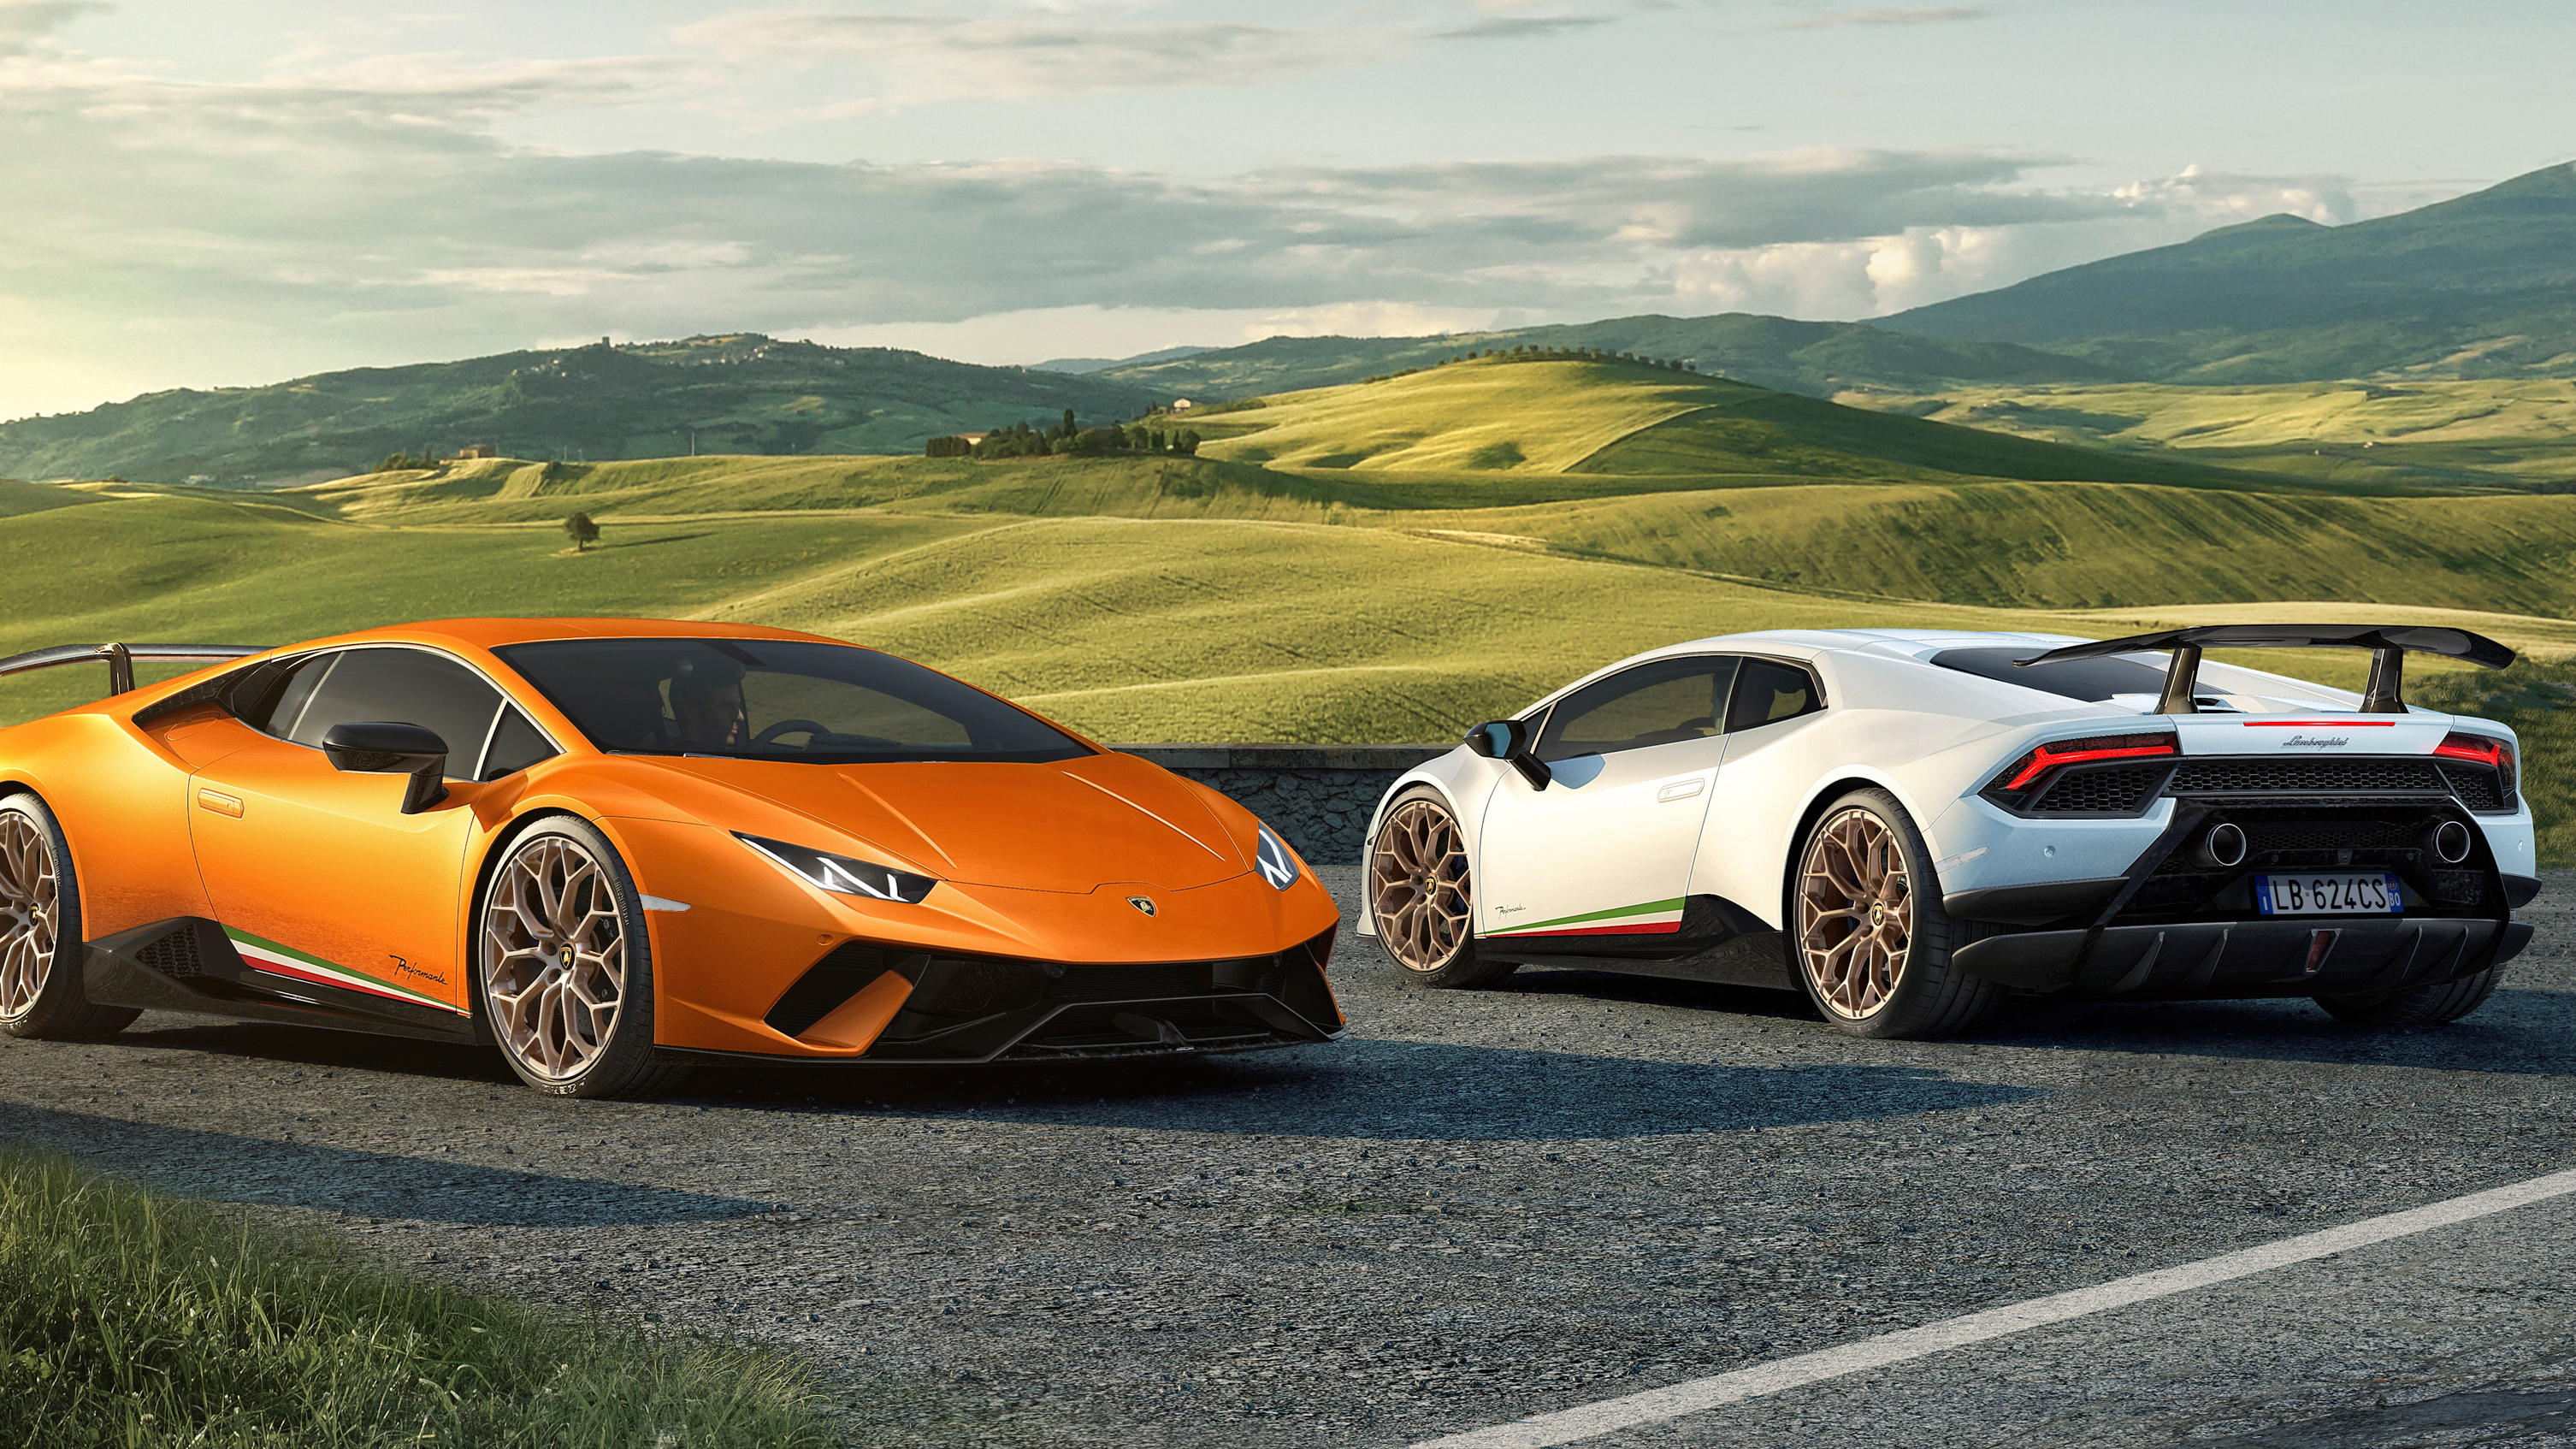 2017 Lamborghini Huracan Performante 3 Wallpaper Hd Car